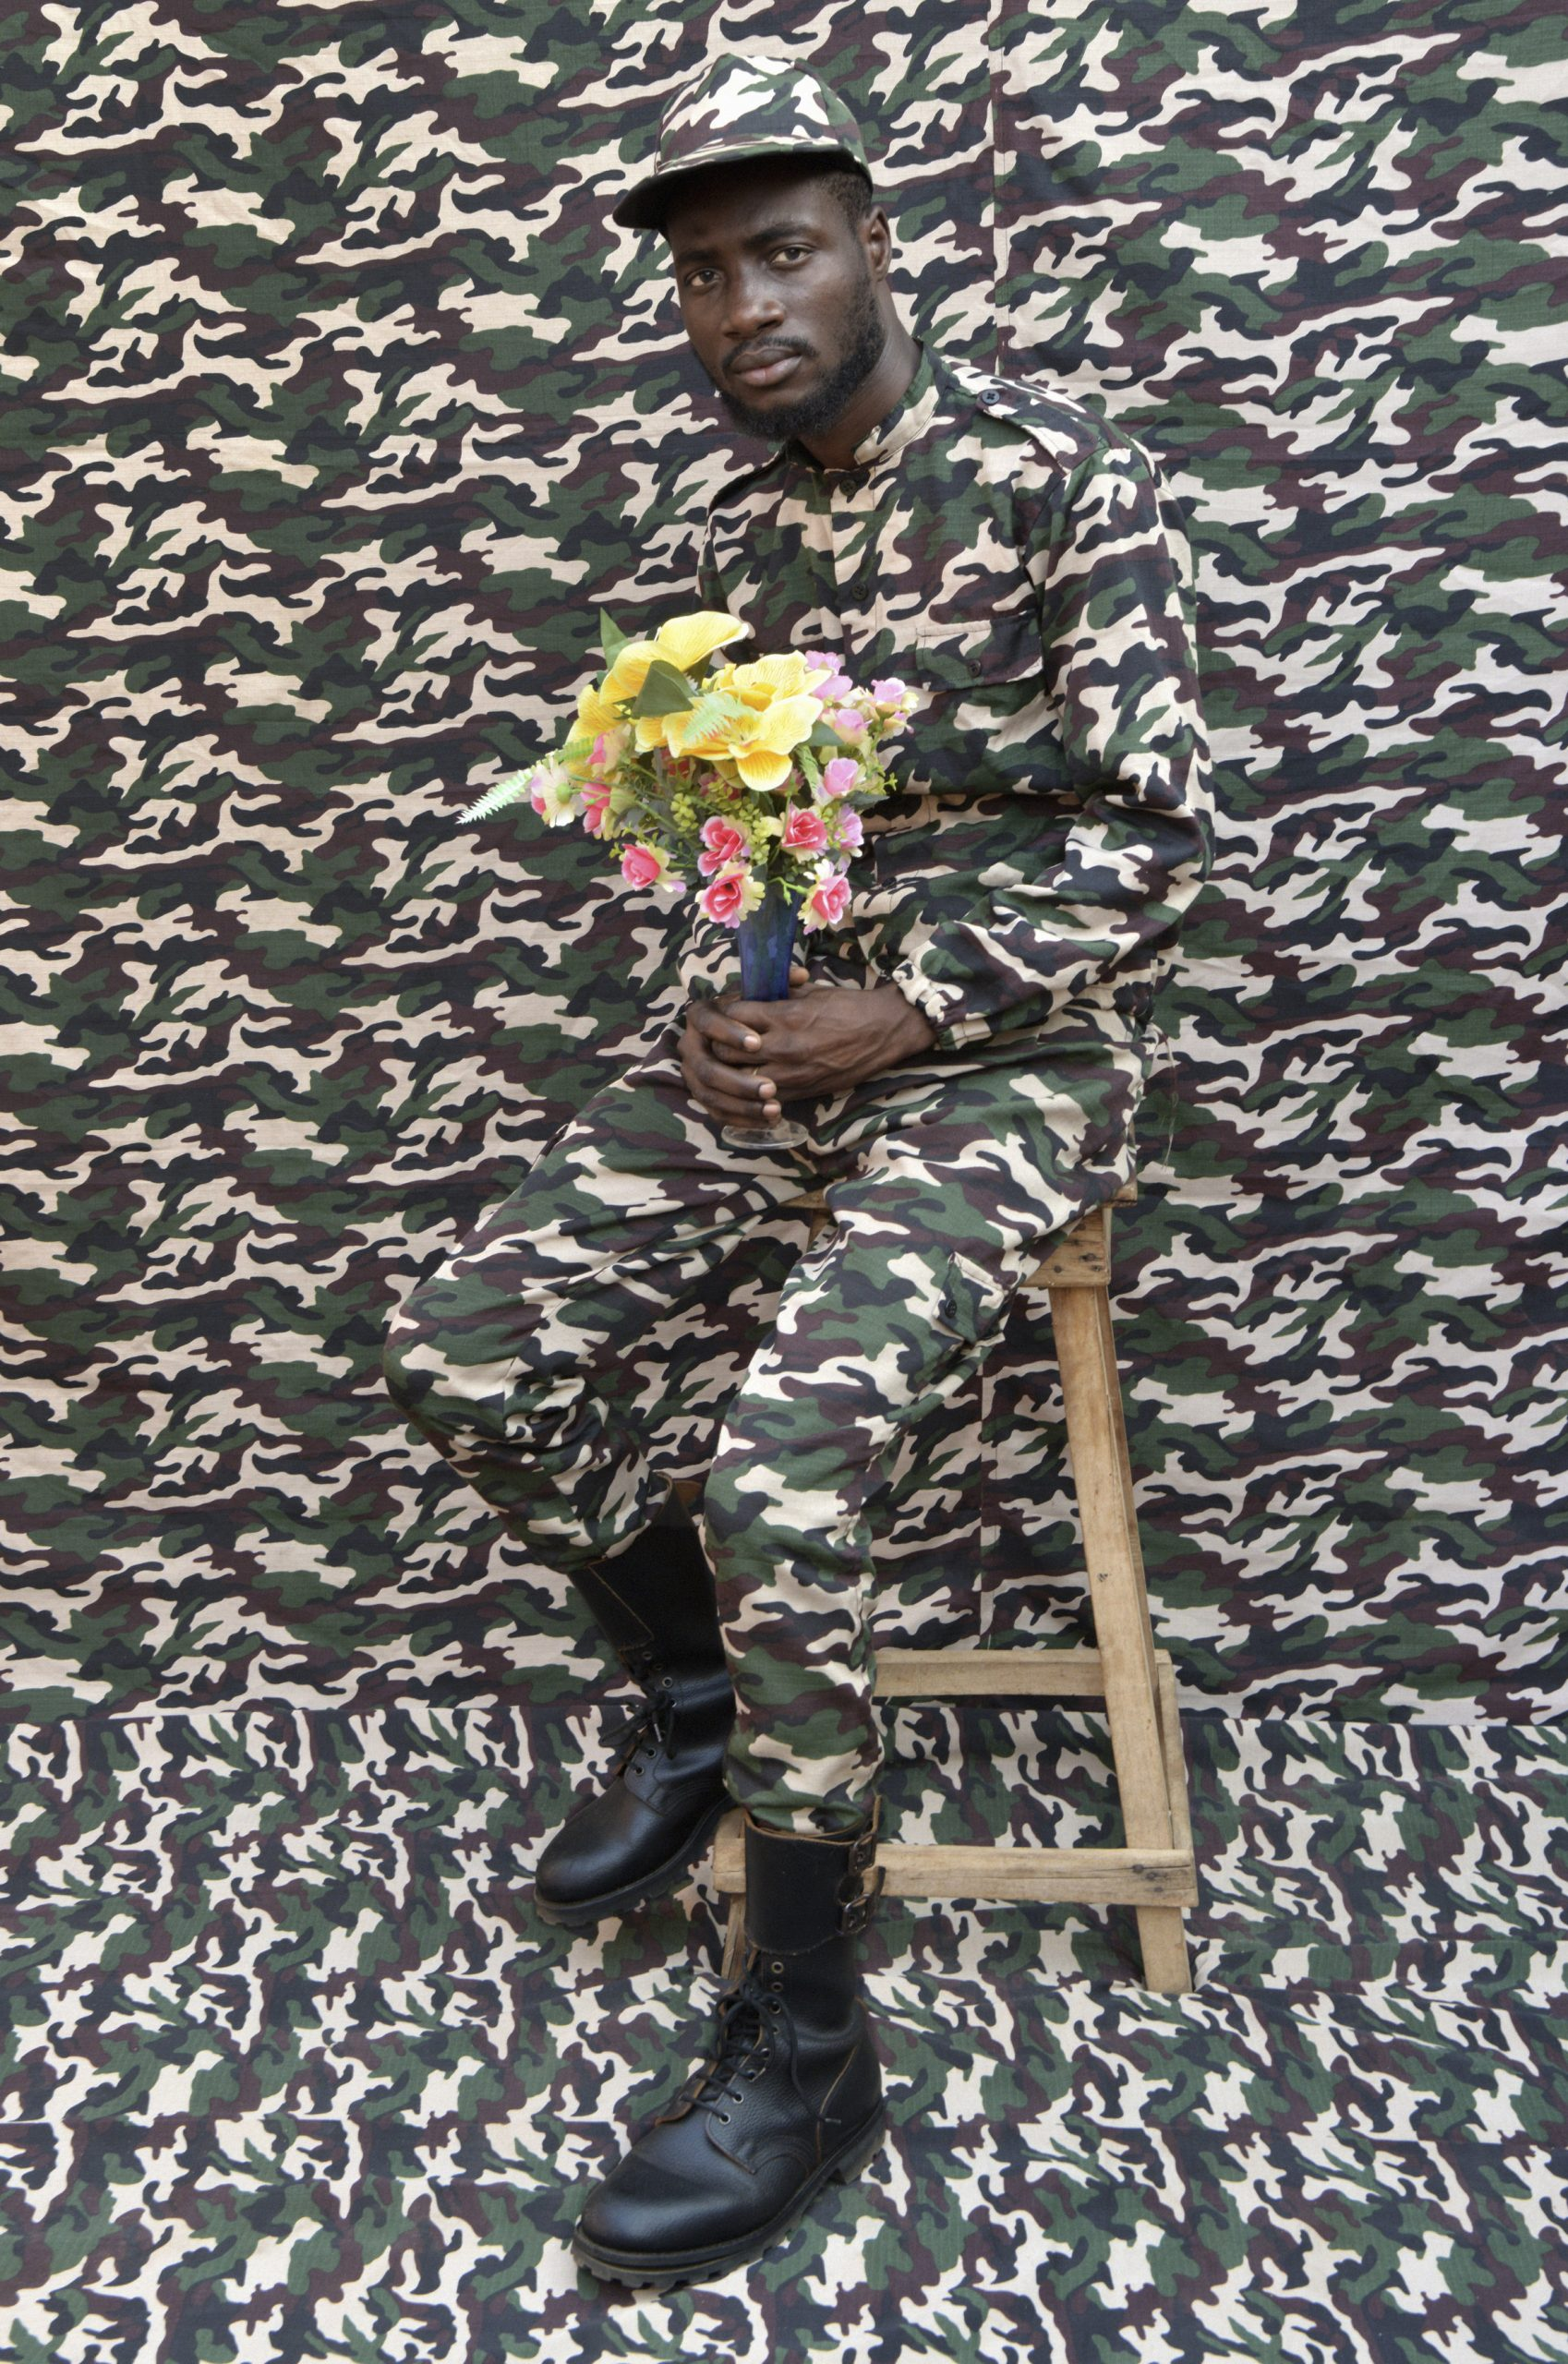 """Born in 1965 in Porto Novo, Benin, Leonce Raphael Agbodjelelou """"draws inspiration from growing up working in his father Joseph's prestigious studio and casts models in place of paying clientele,"""" says Yossi Milo, who curated the exhibit. Here, military camouflage pattern seems to merge subject and backdrop into one even while colorful flowers burst out of the background."""